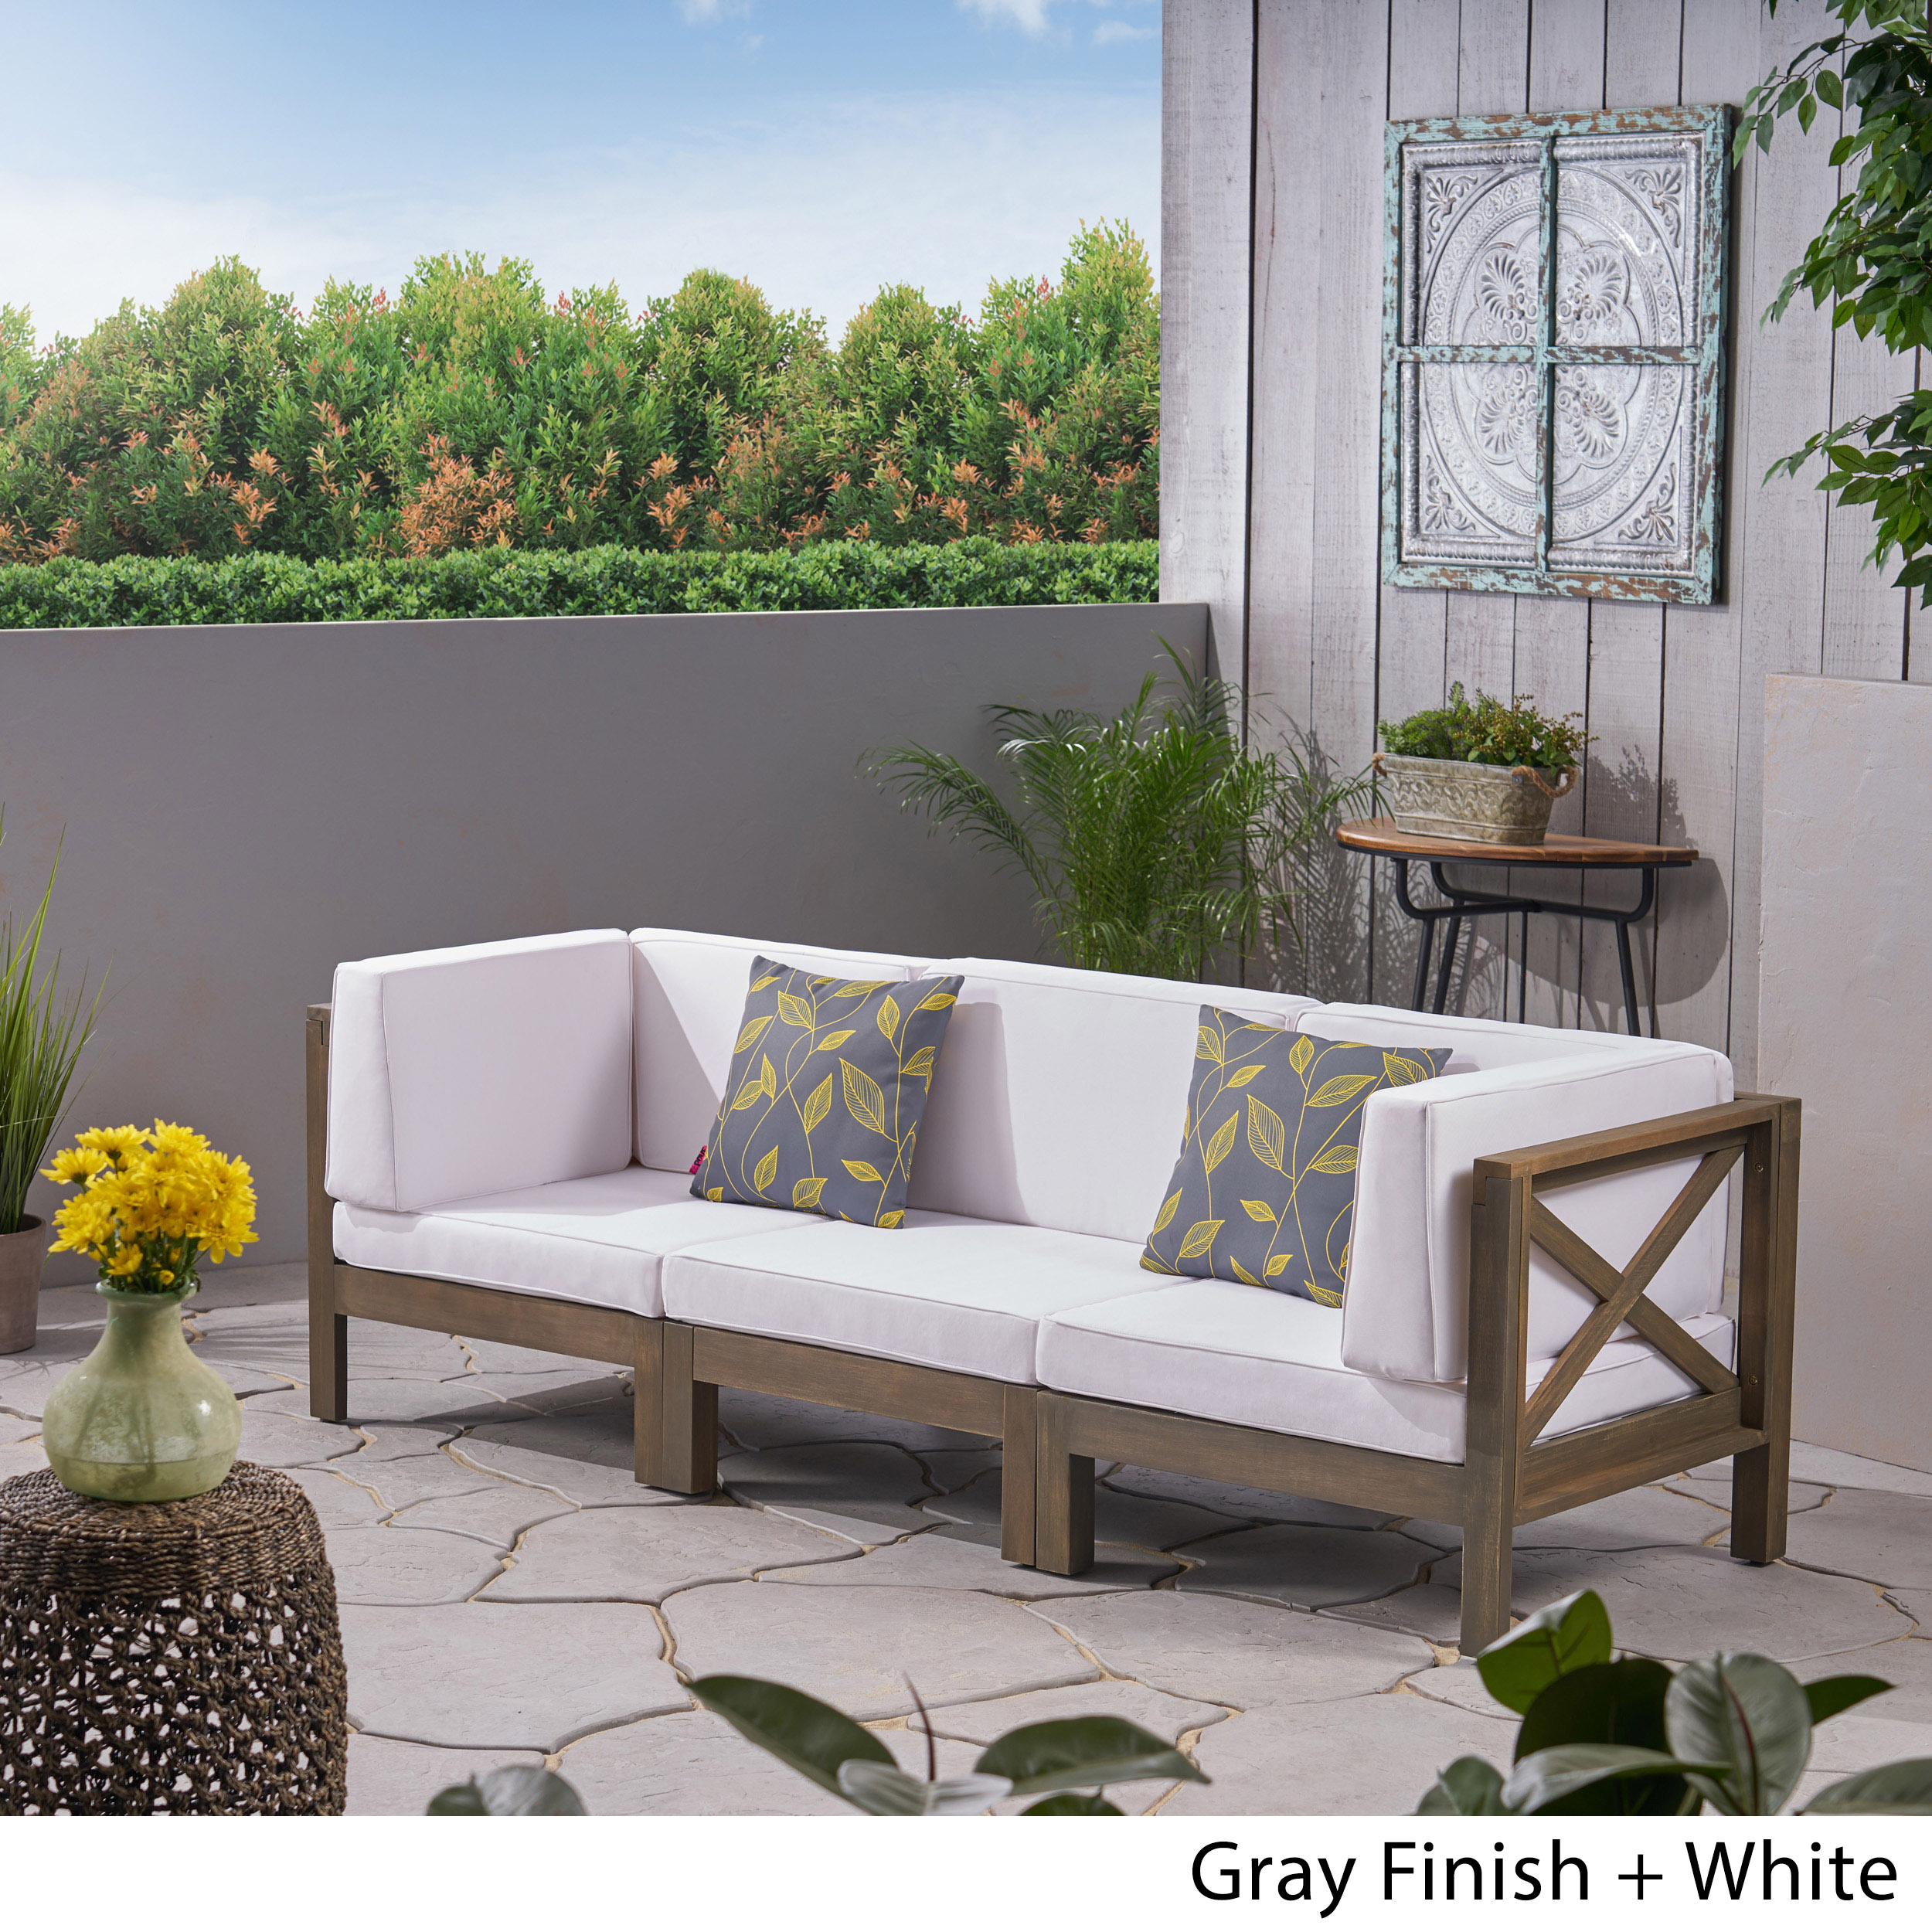 Details about Great Deal Furniture Keith Outdoor Sectional Sofa Set  3-Seater Acacia Wood Wa